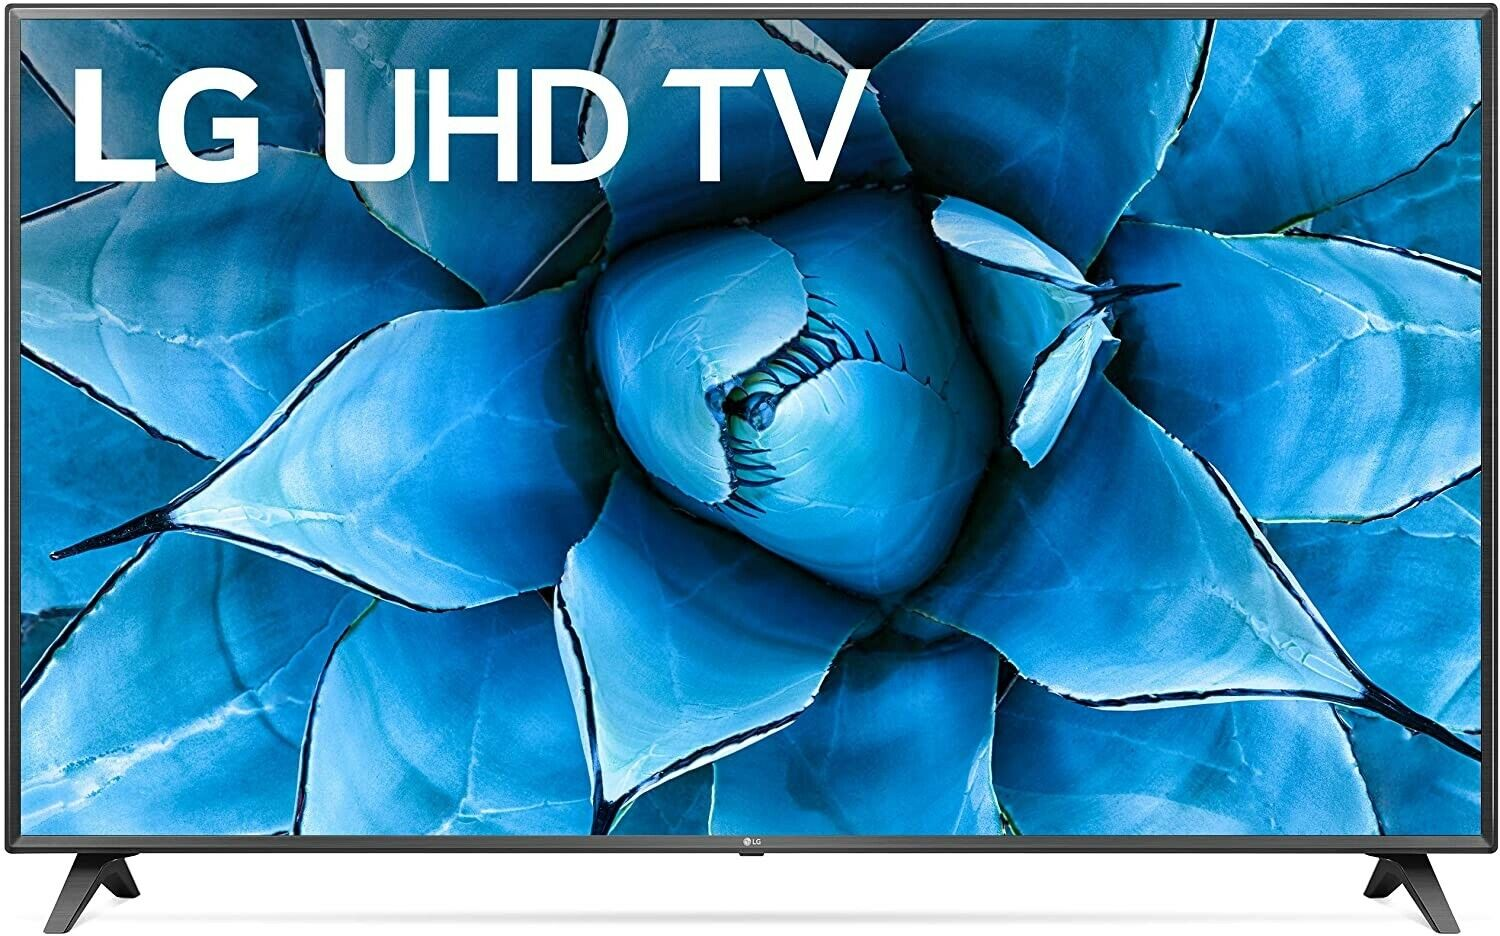 LG 75UN7370PUE Alexa Built-In UHD 73 Series 75 4K Smart UHD TV (2020). Available Now for 949.00